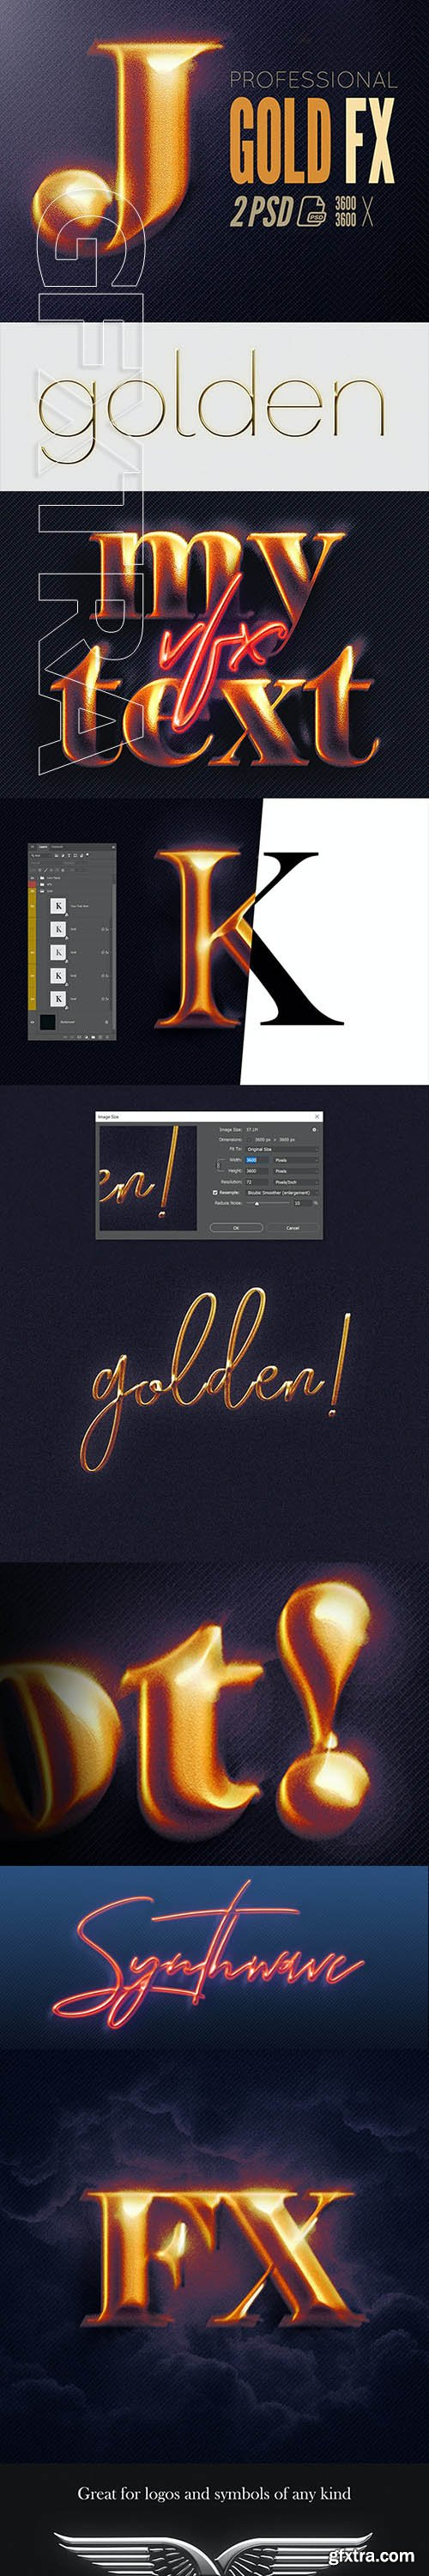 GraphicRiver - Epic Gold Effects for Adobe Photoshop 26676026